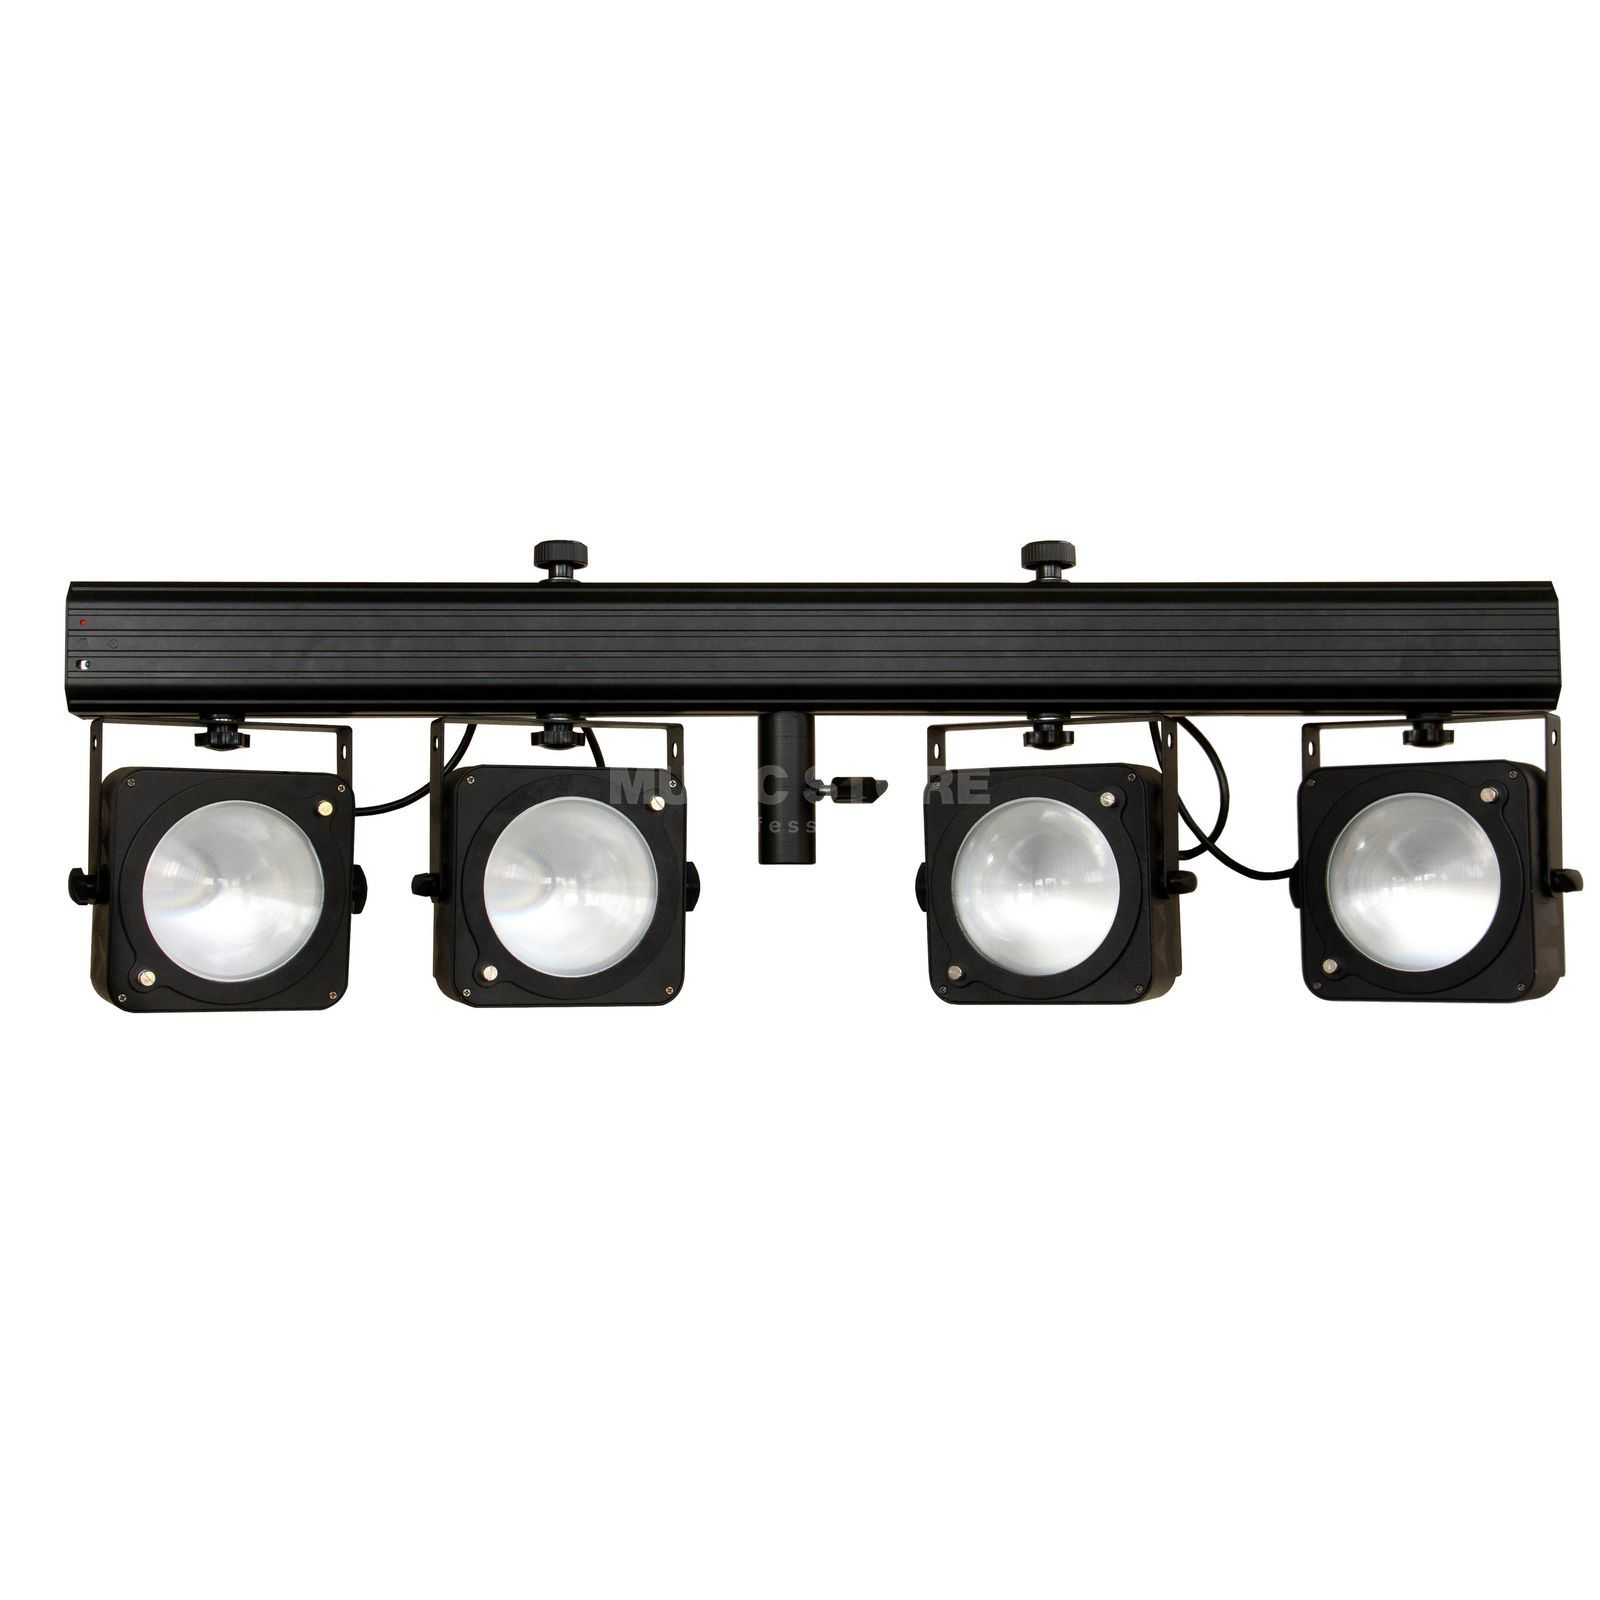 JB Systems COB-4BAR 4x 36W COB LED Bar Produktbild